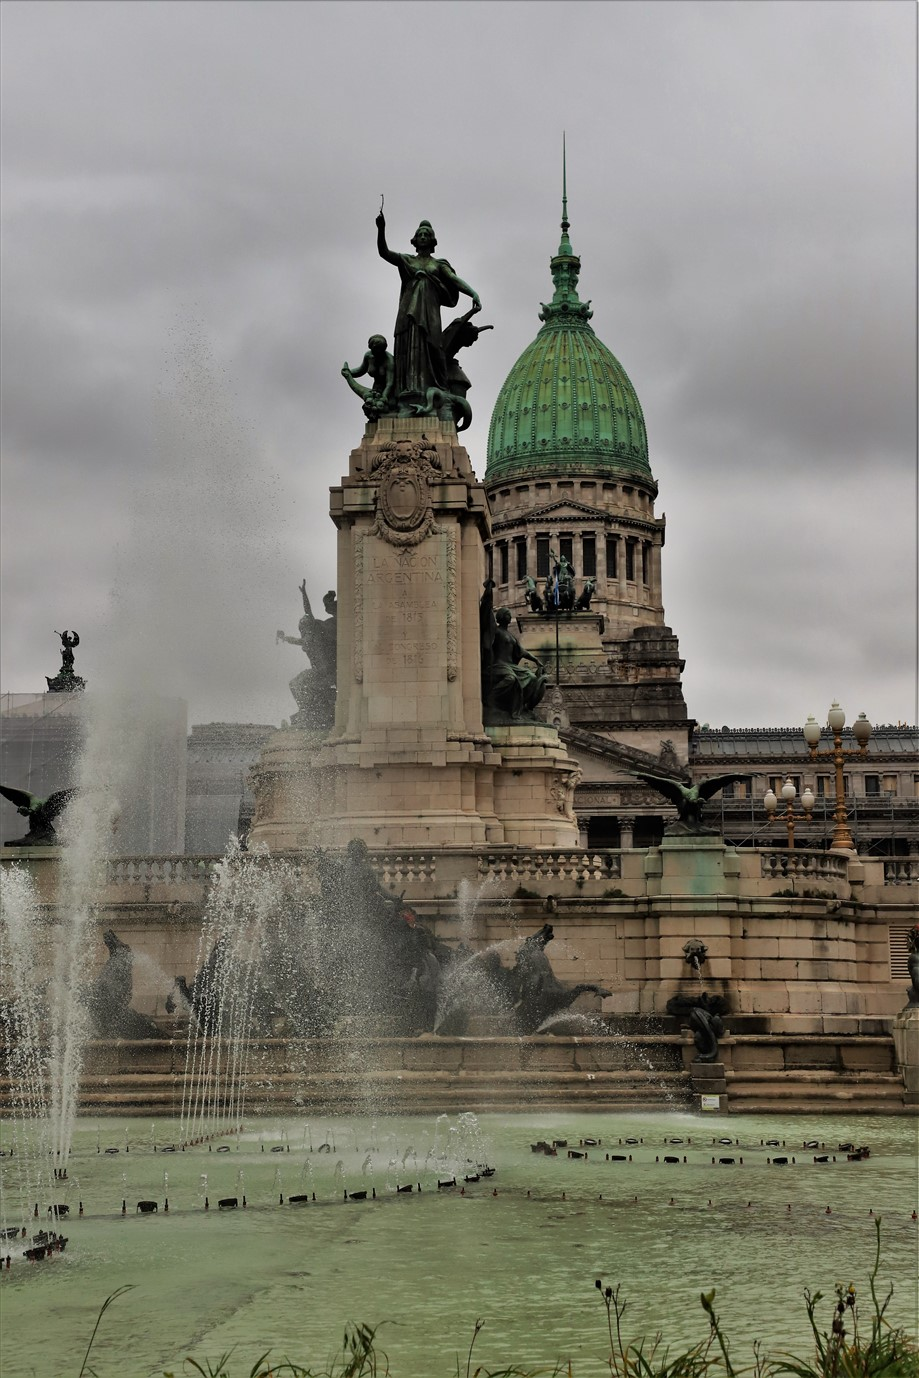 Buenos Aires – June 2019 – A Walk Down the Avenida de Mayo